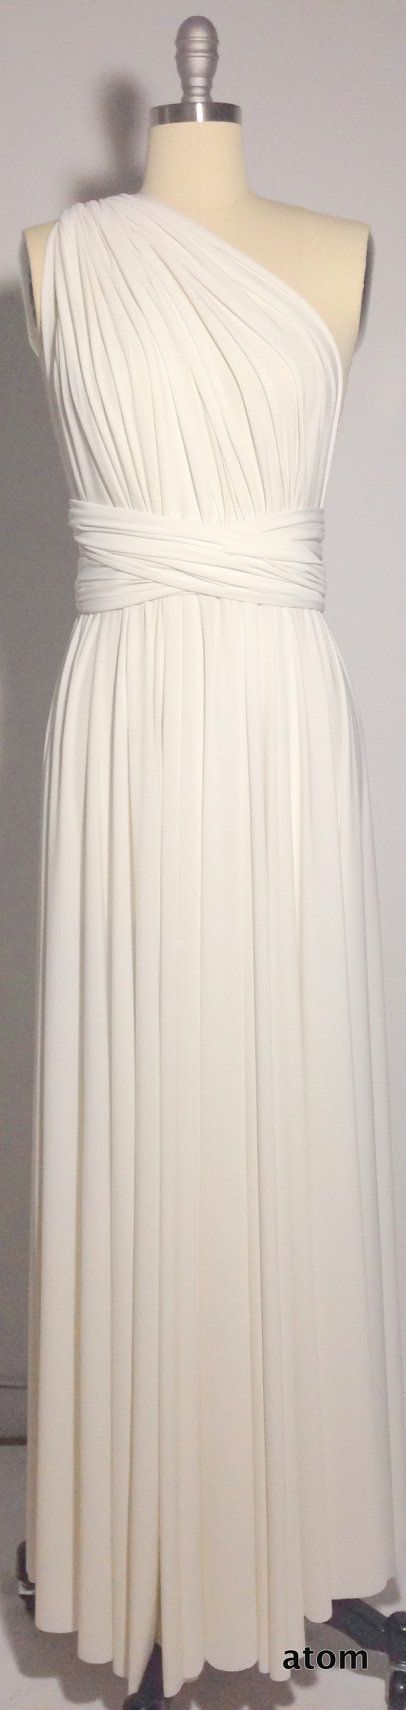 Hey, I found this really awesome Etsy listing at https://www.etsy.com/listing/203615536/white-long-maxi-infinity-dress-gown